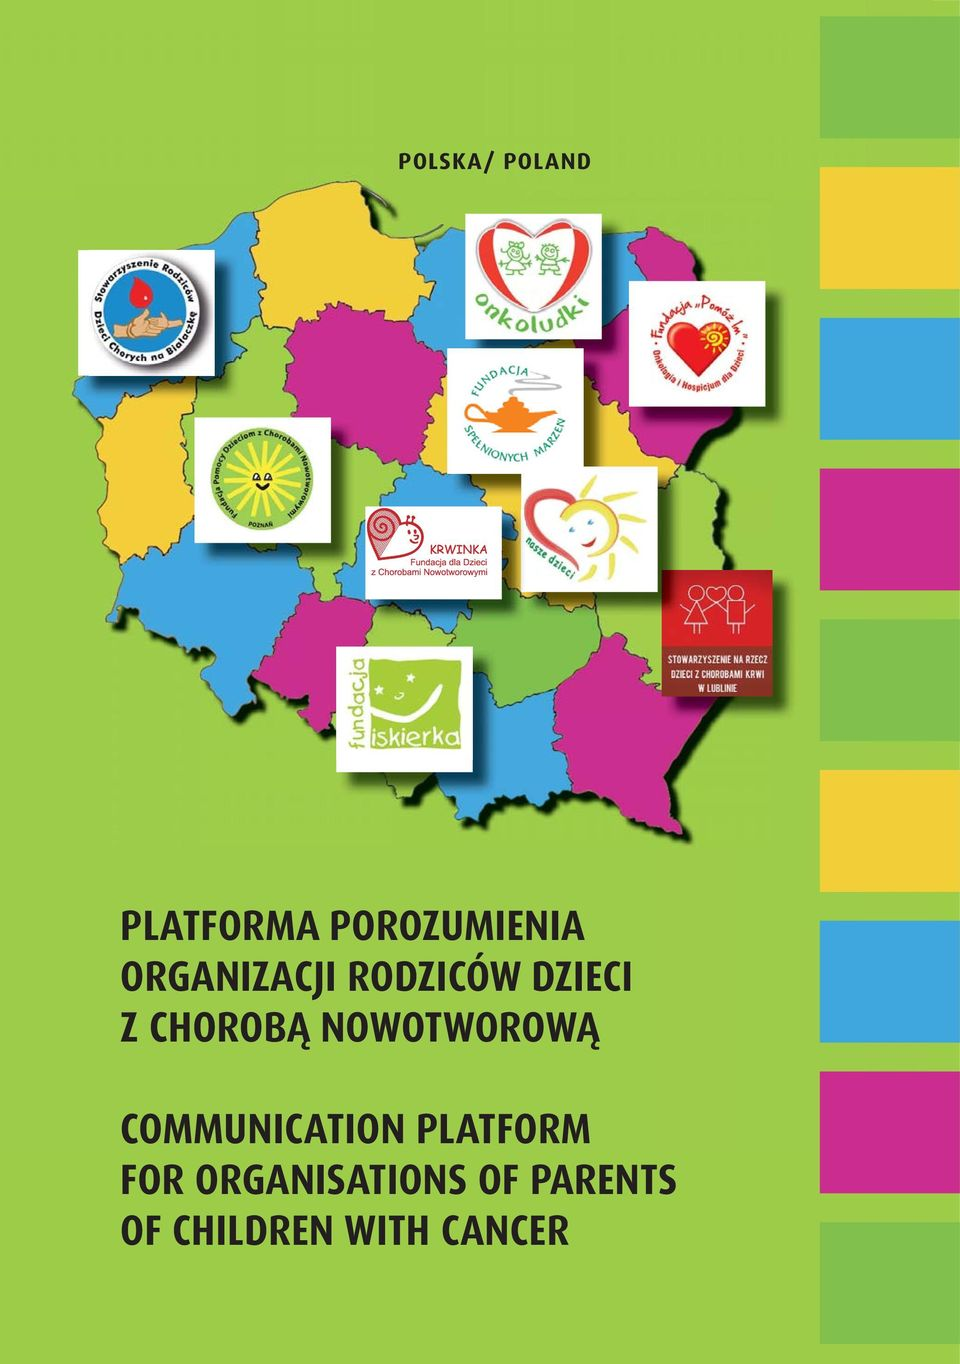 NOWOTWOROWĄ COMMUNICATION PLATFORM FOR